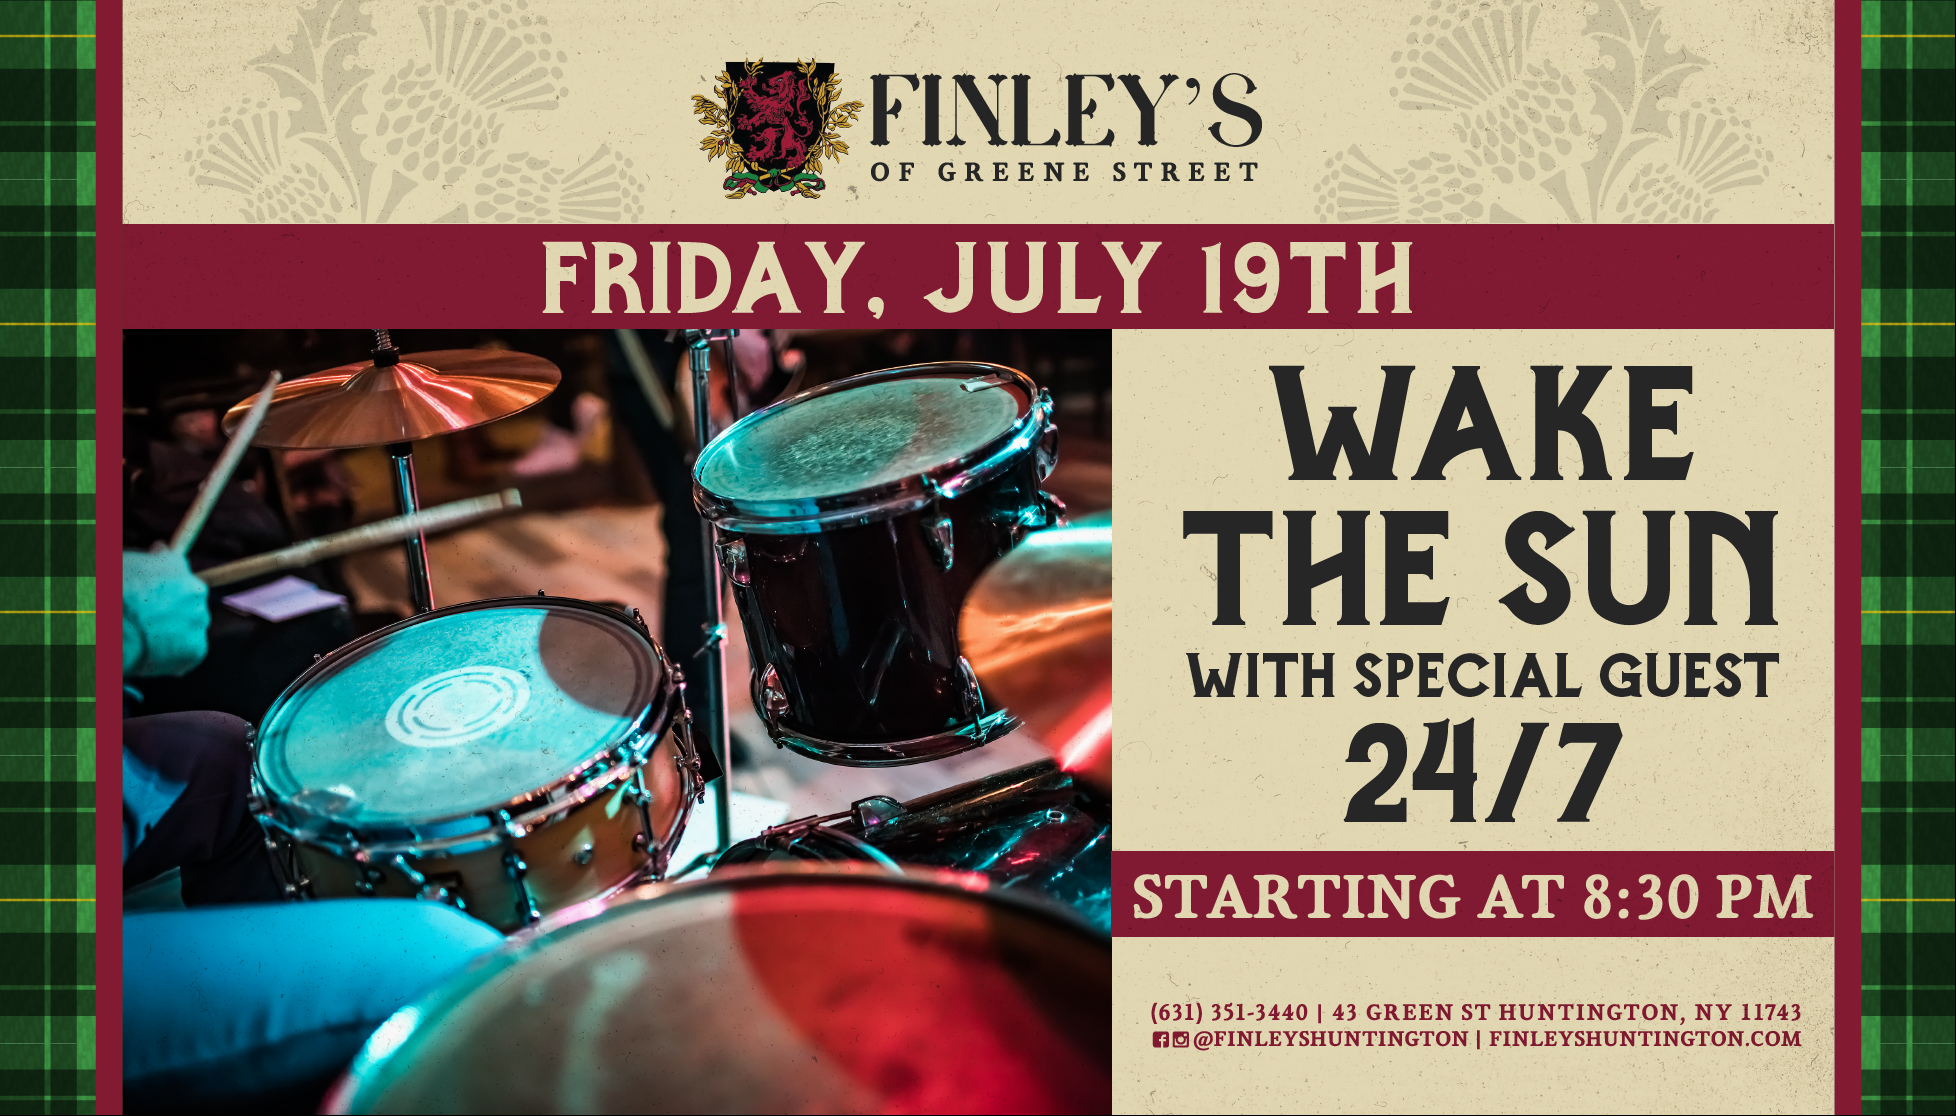 Flyer for live music with Wake the Sun and Special Guest 24/7 at 8:30pm on July 19th.